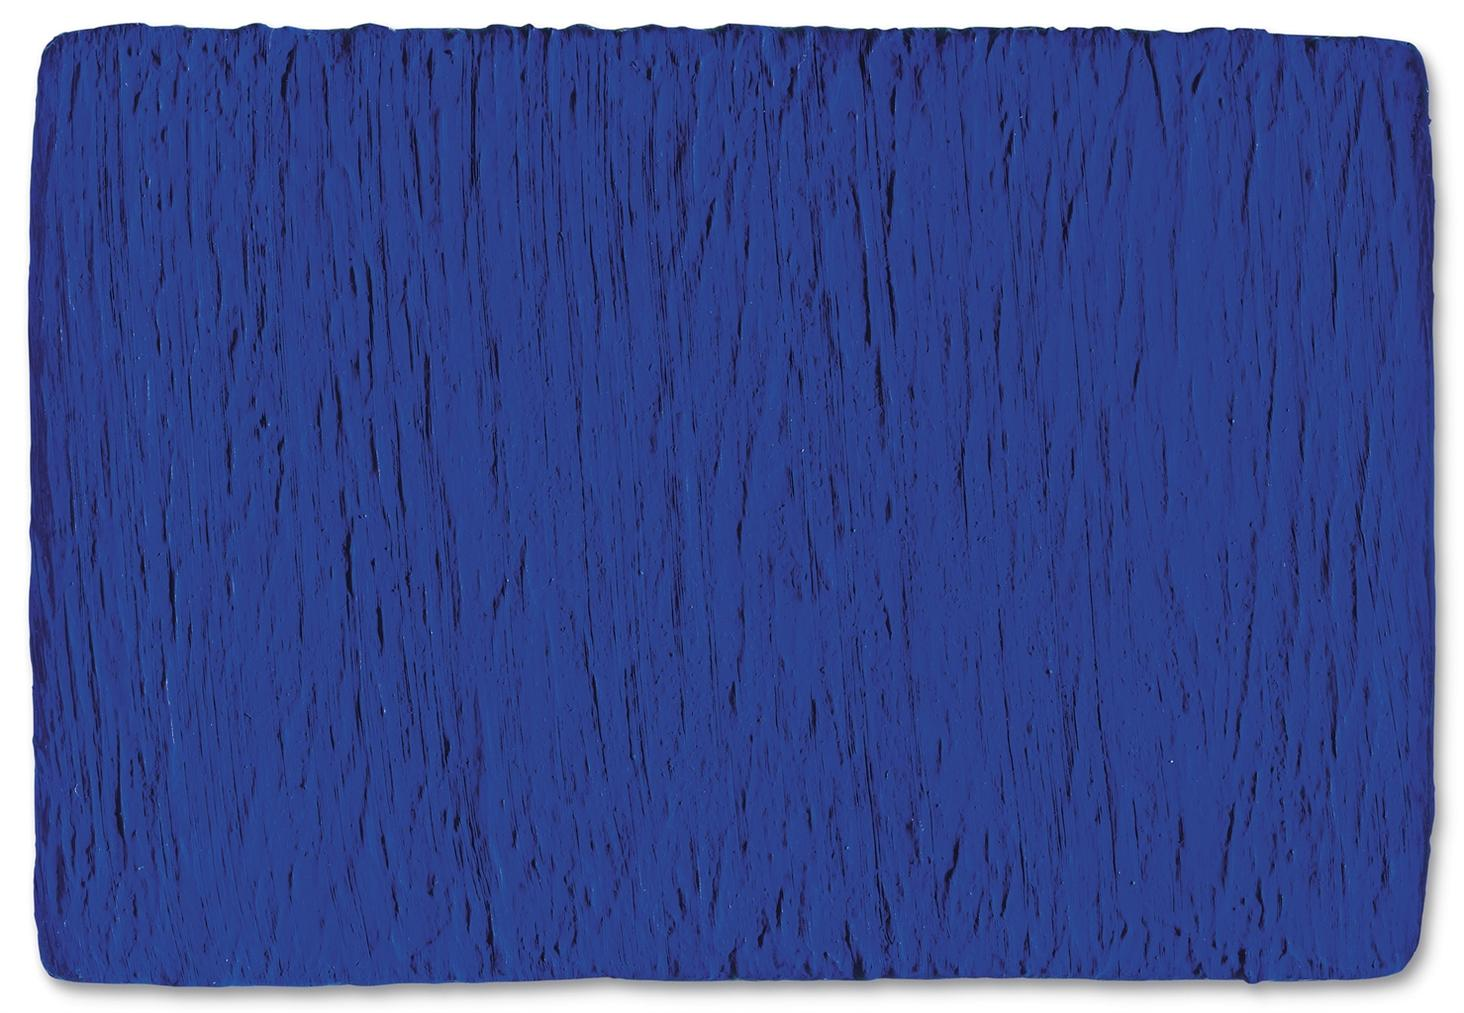 Yves Klein-Untitled Blue Monochrome (Ikb 266)-1957